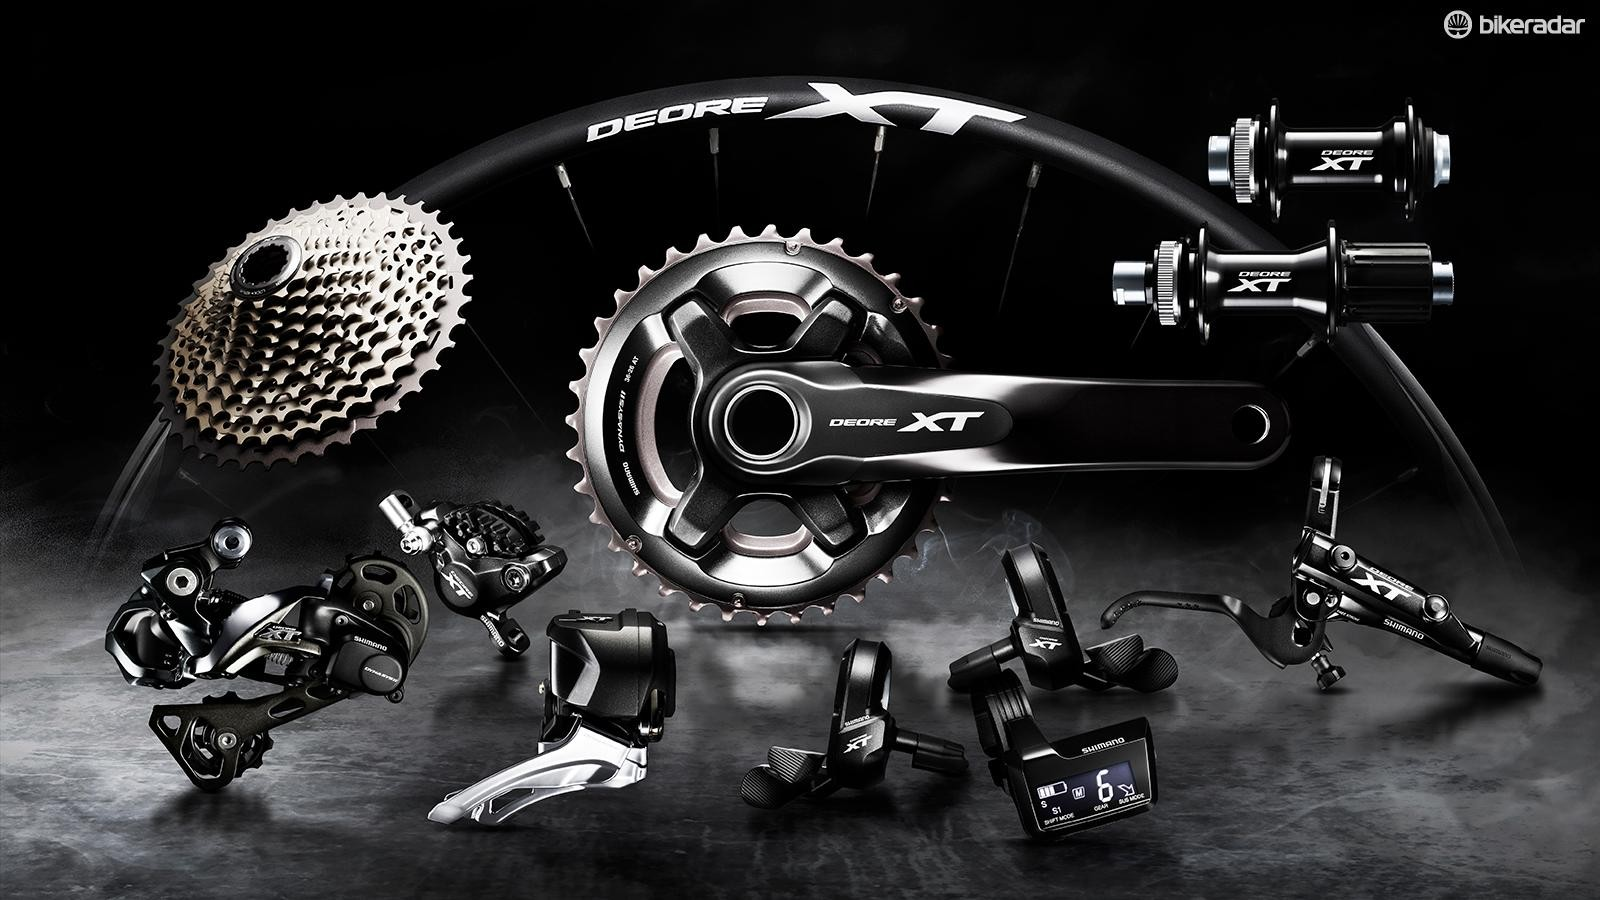 Shimano's XT level Di2 groupset brings electronic shifting to a slightly more affordable (or at least less expensive) level. Like the mechanical version XT Di2 is available in 1x and 2x versions